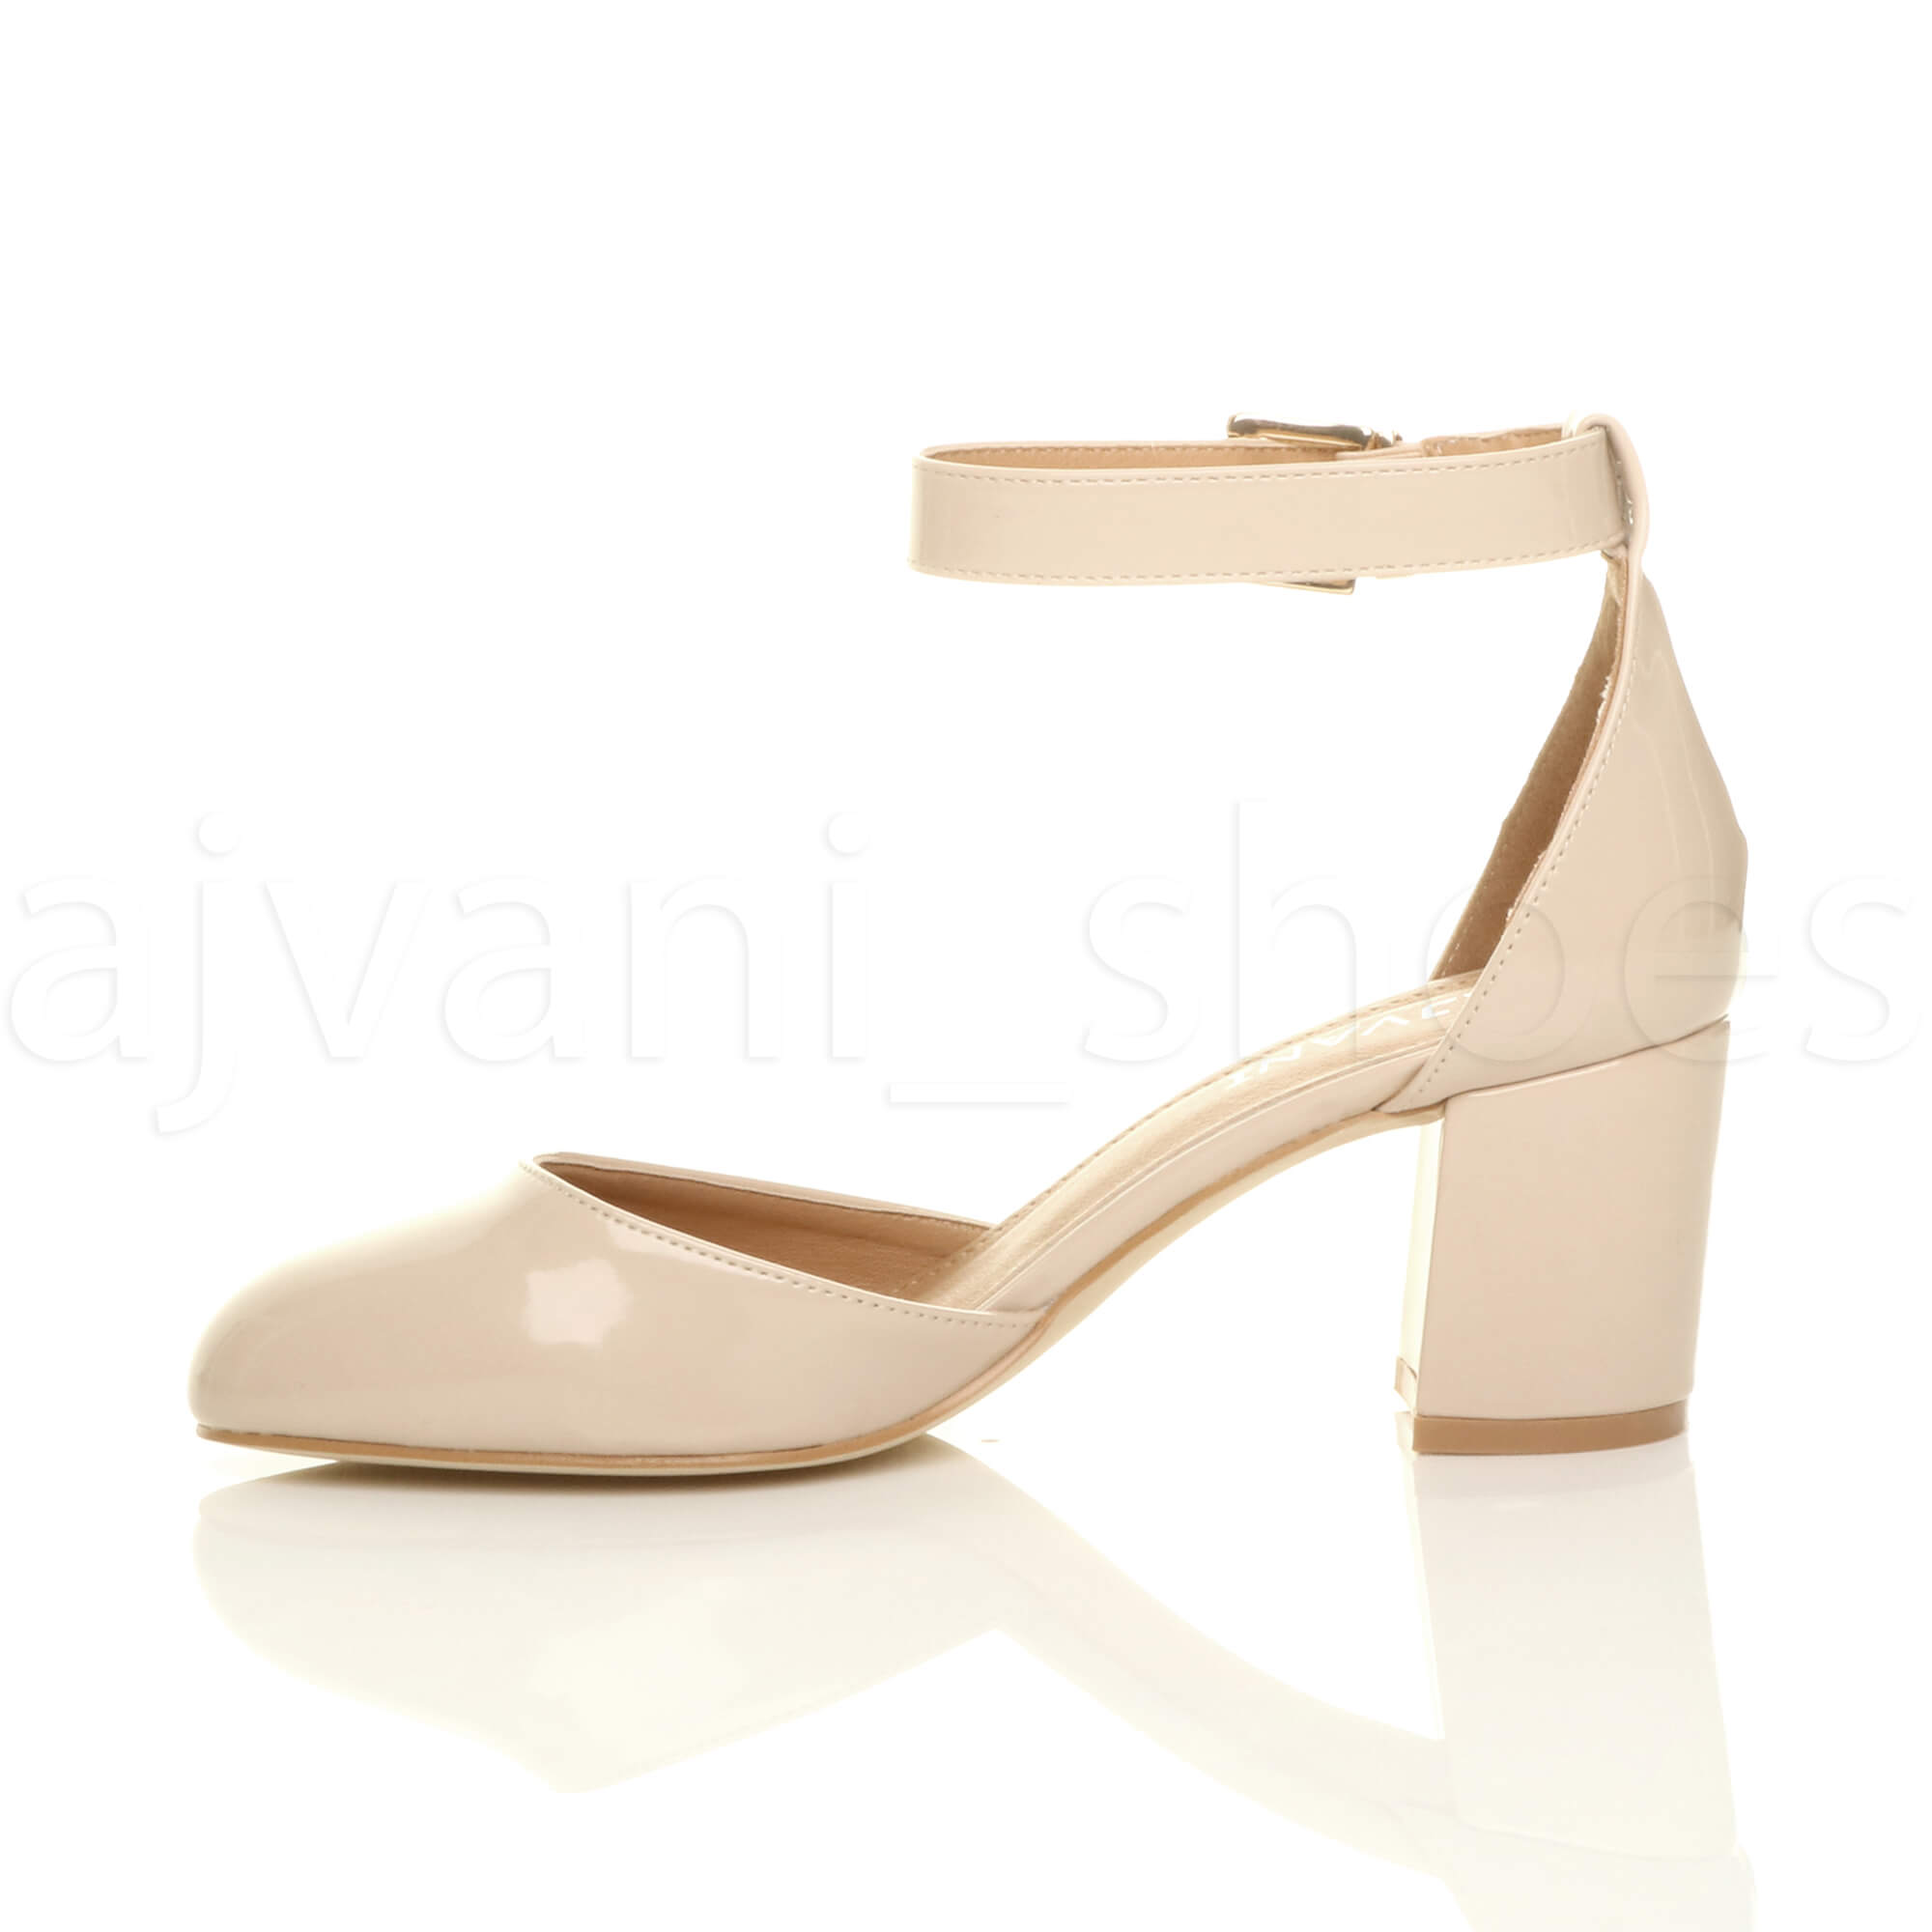 WOMENS-LADIES-LOW-MID-BLOCK-HEEL-ANKLE-STRAP-MARY-JANE-COURT-SHOES-SANDALS-SIZE thumbnail 116